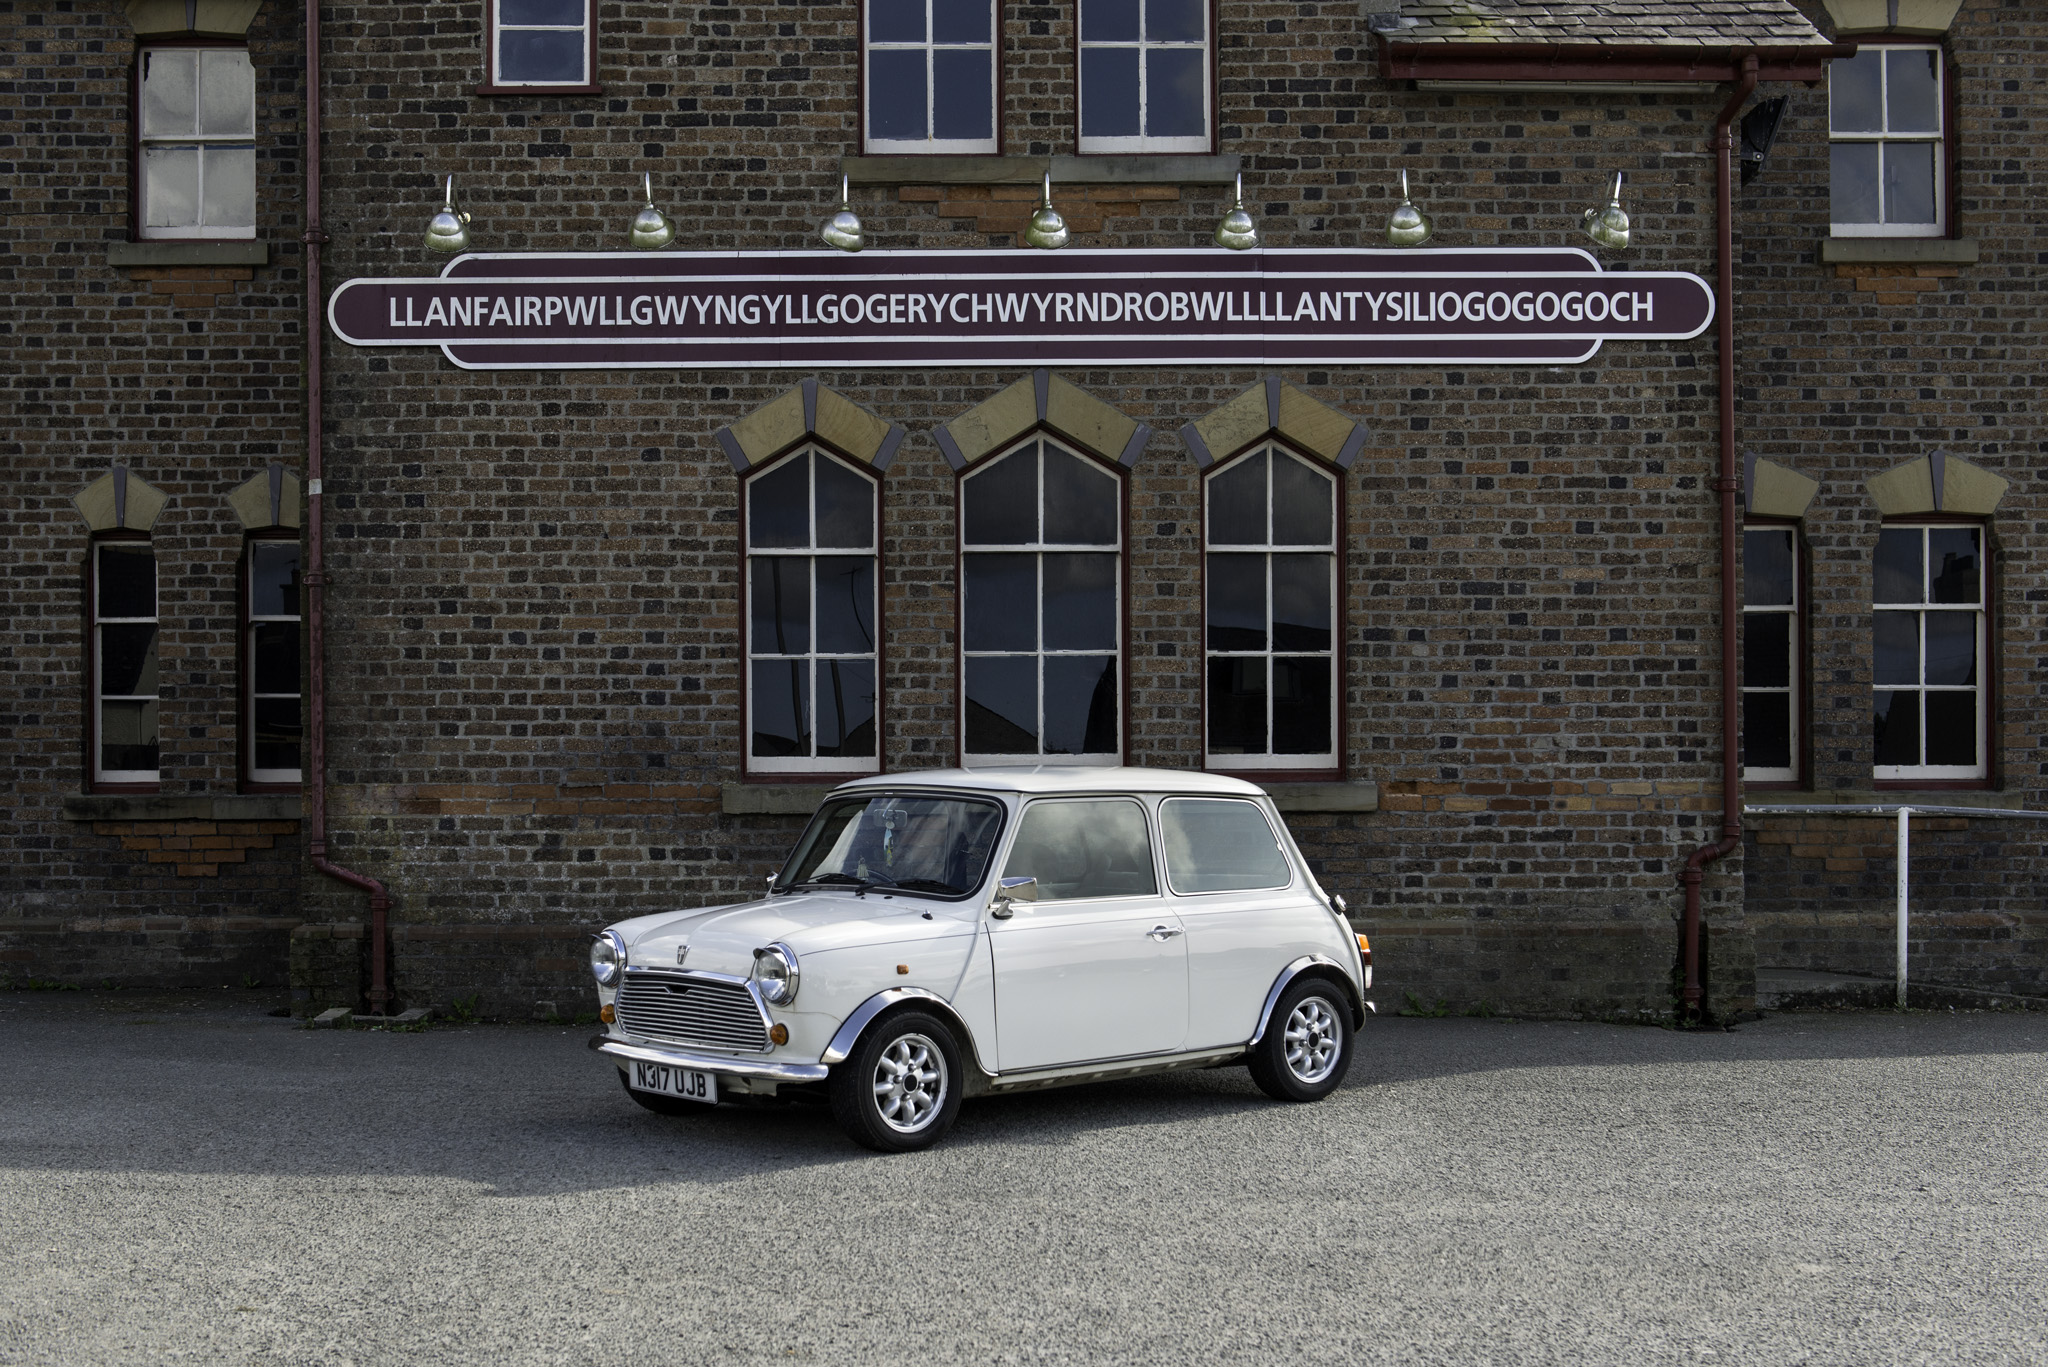 1995 ROVER MINI MAYFAIR  |  OWNER - ABBIE & ZAC REILLY  |  LOCATION - LLANFAIRPWLL